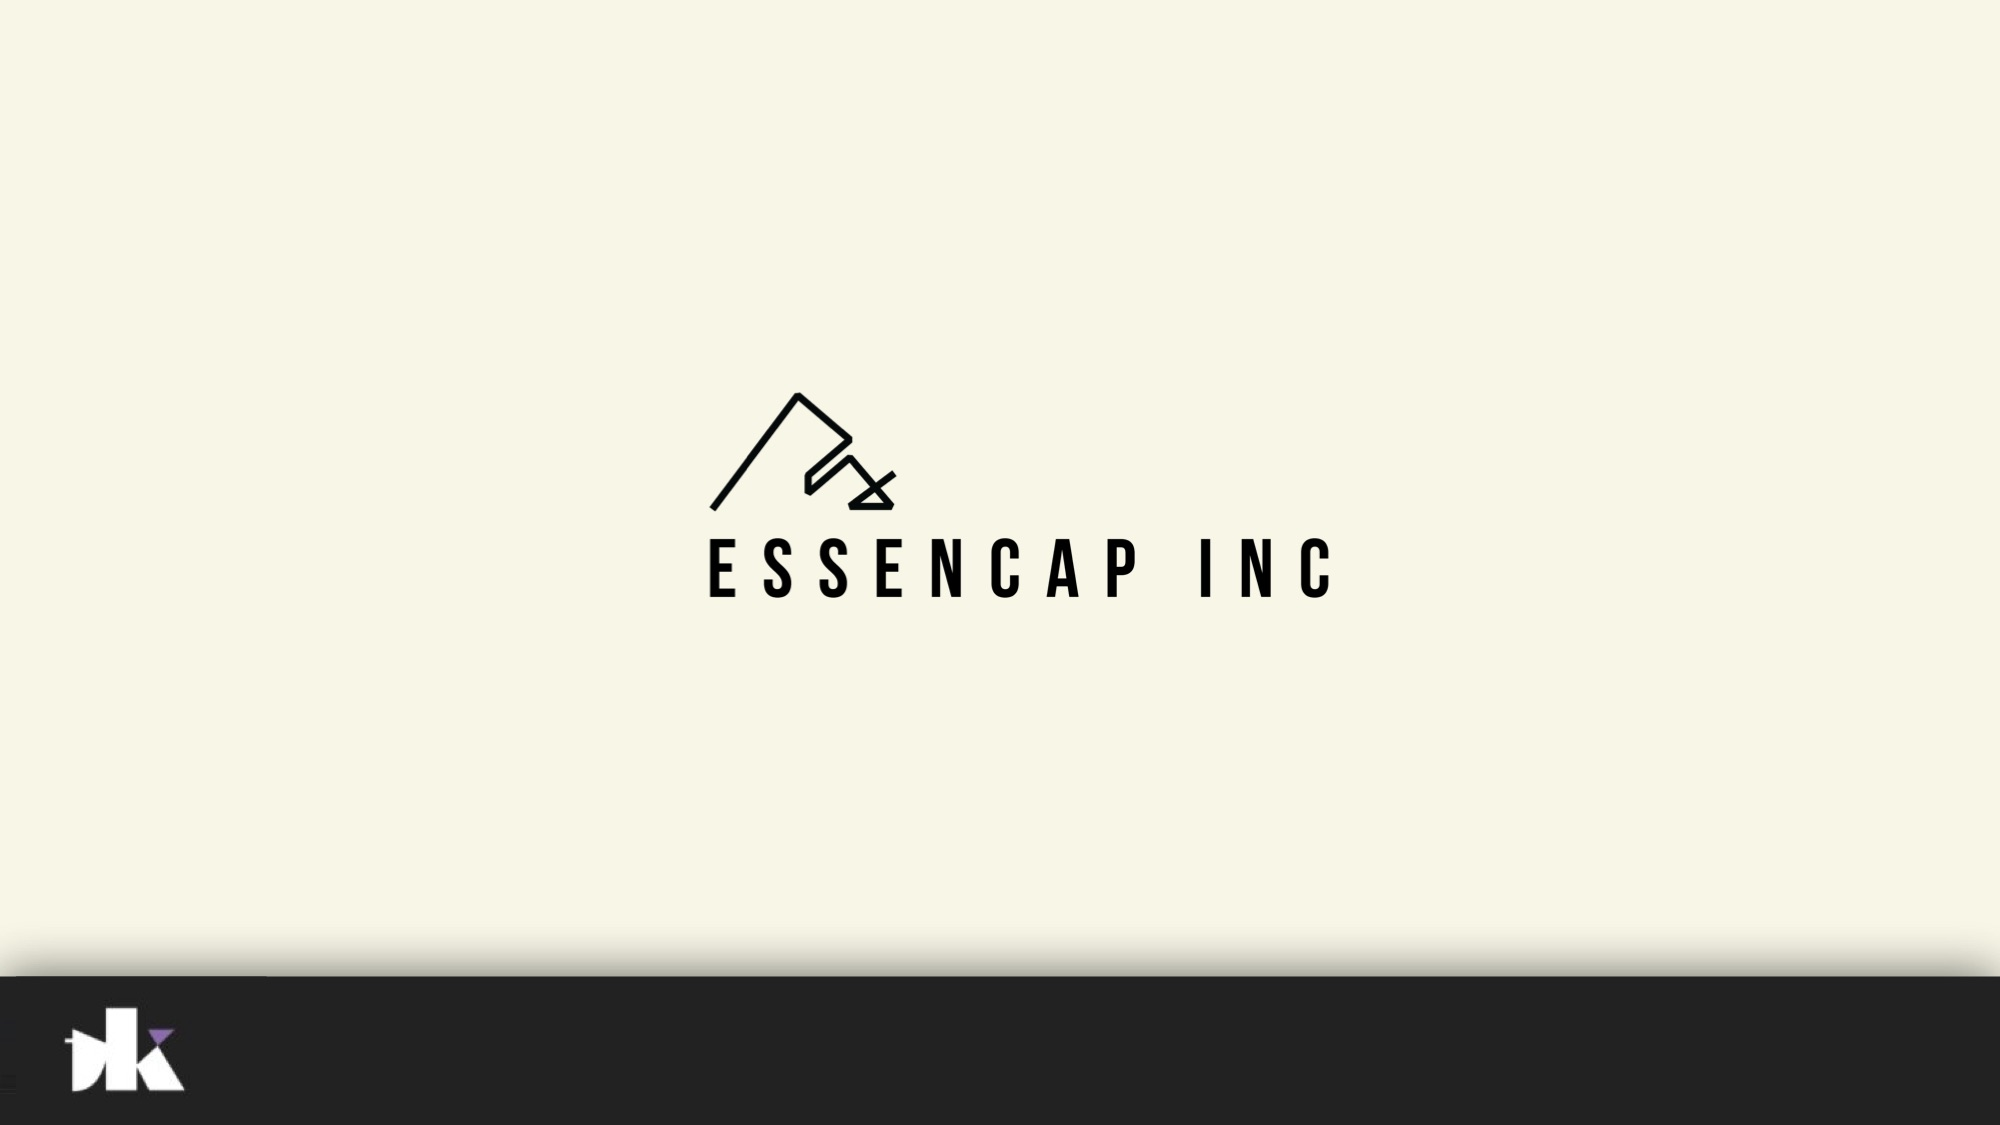 Essencap Branding Process 15